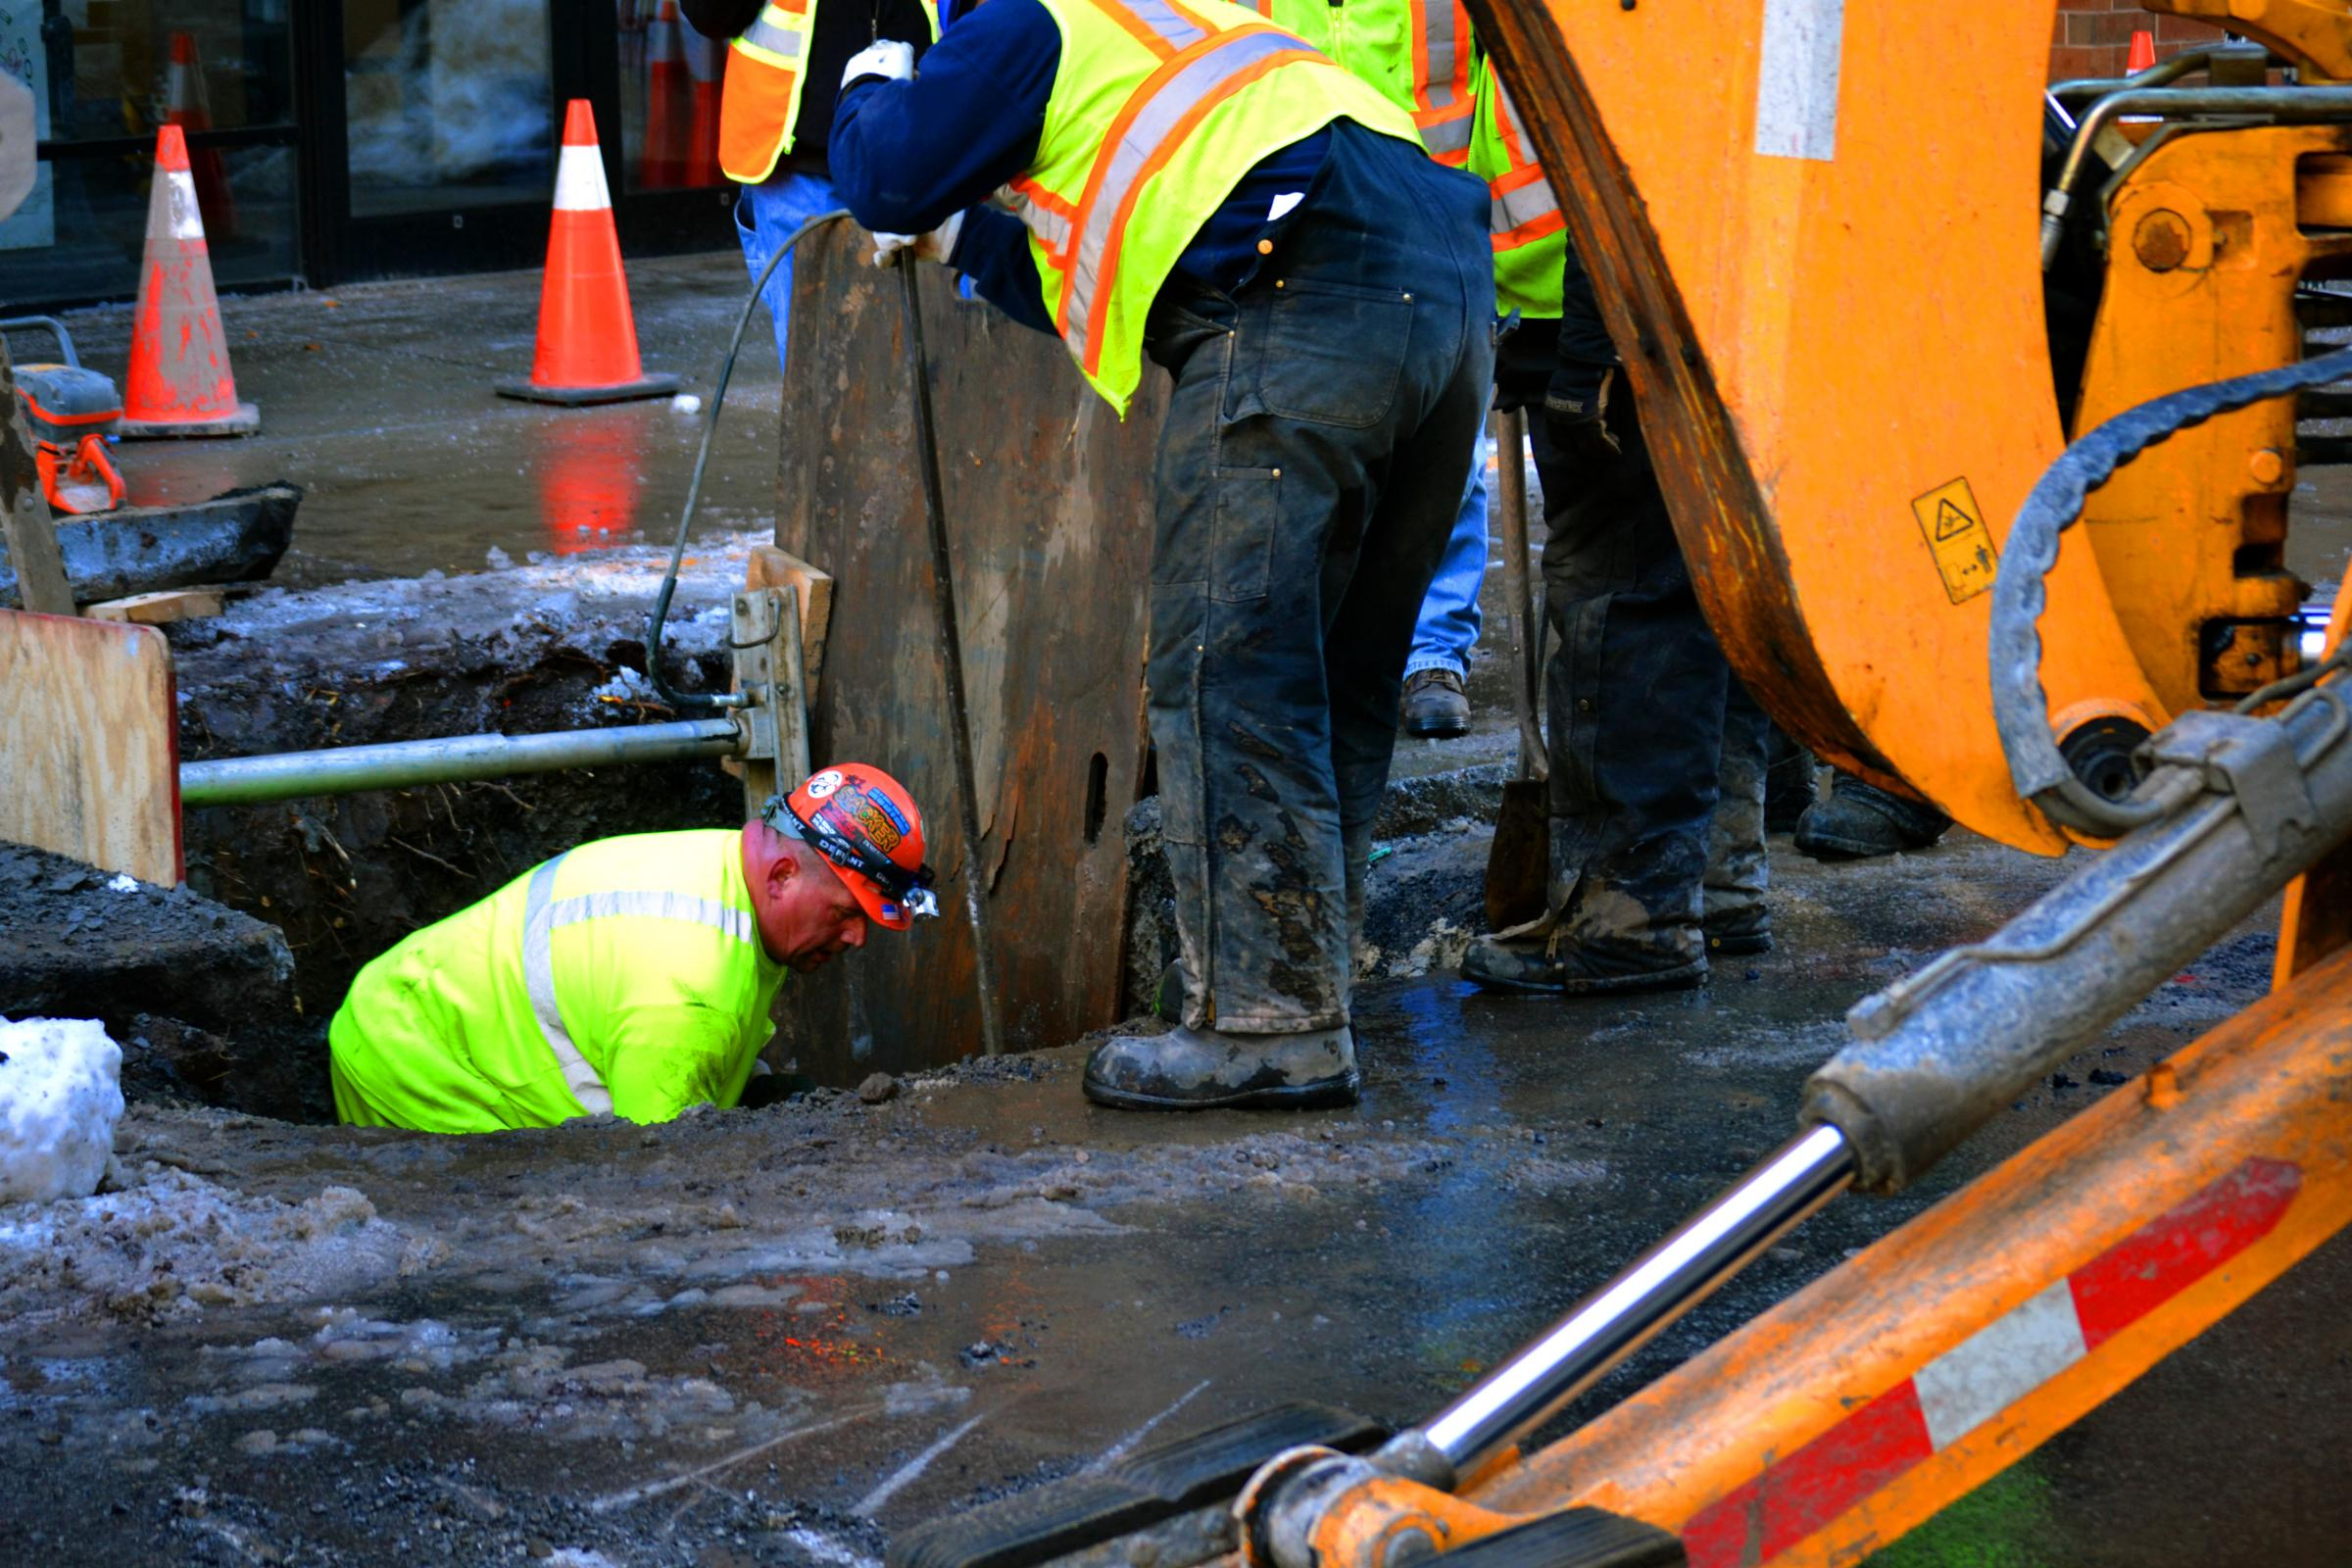 Syracuse patching twice as many water main breaks as